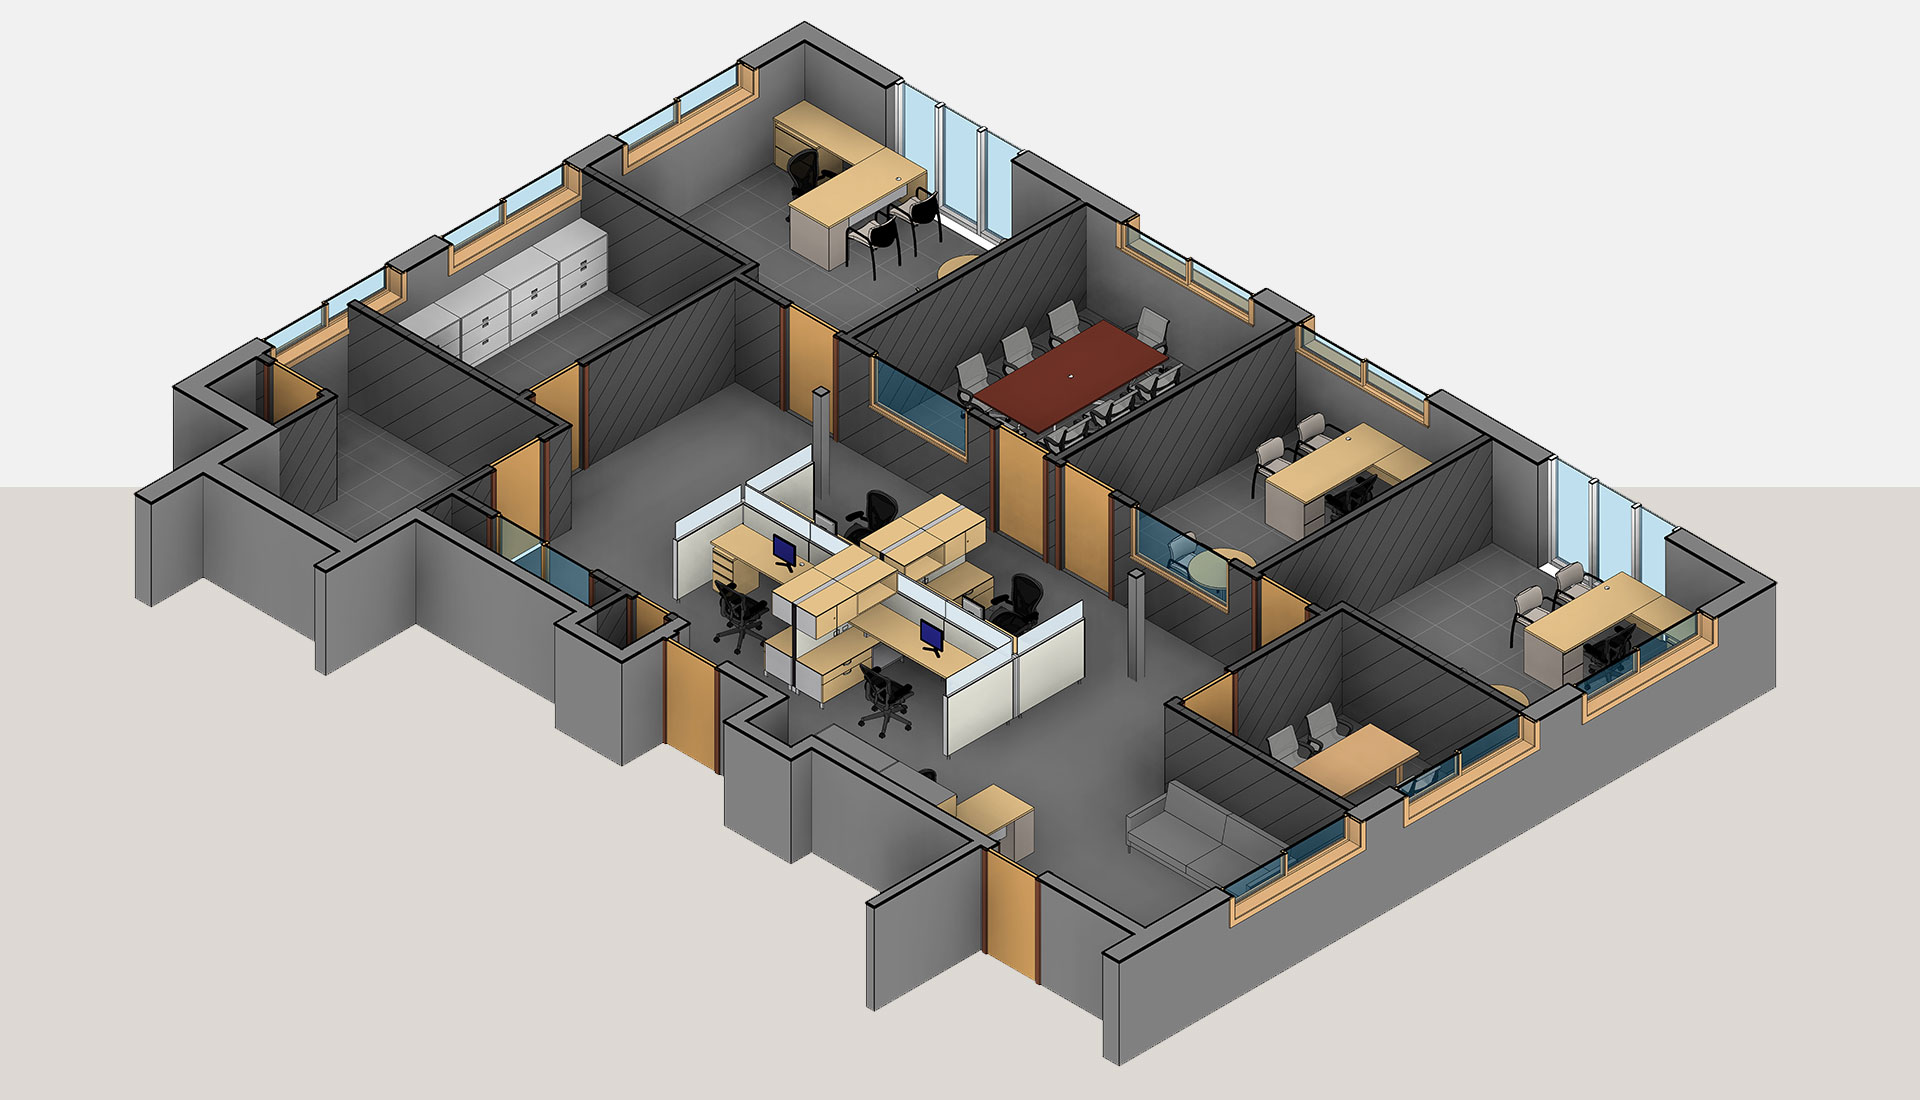 3D-View_Section-of-3D-Revit-Architectural-Model_Office-Space_BIM-Modeling-by-United-BIM